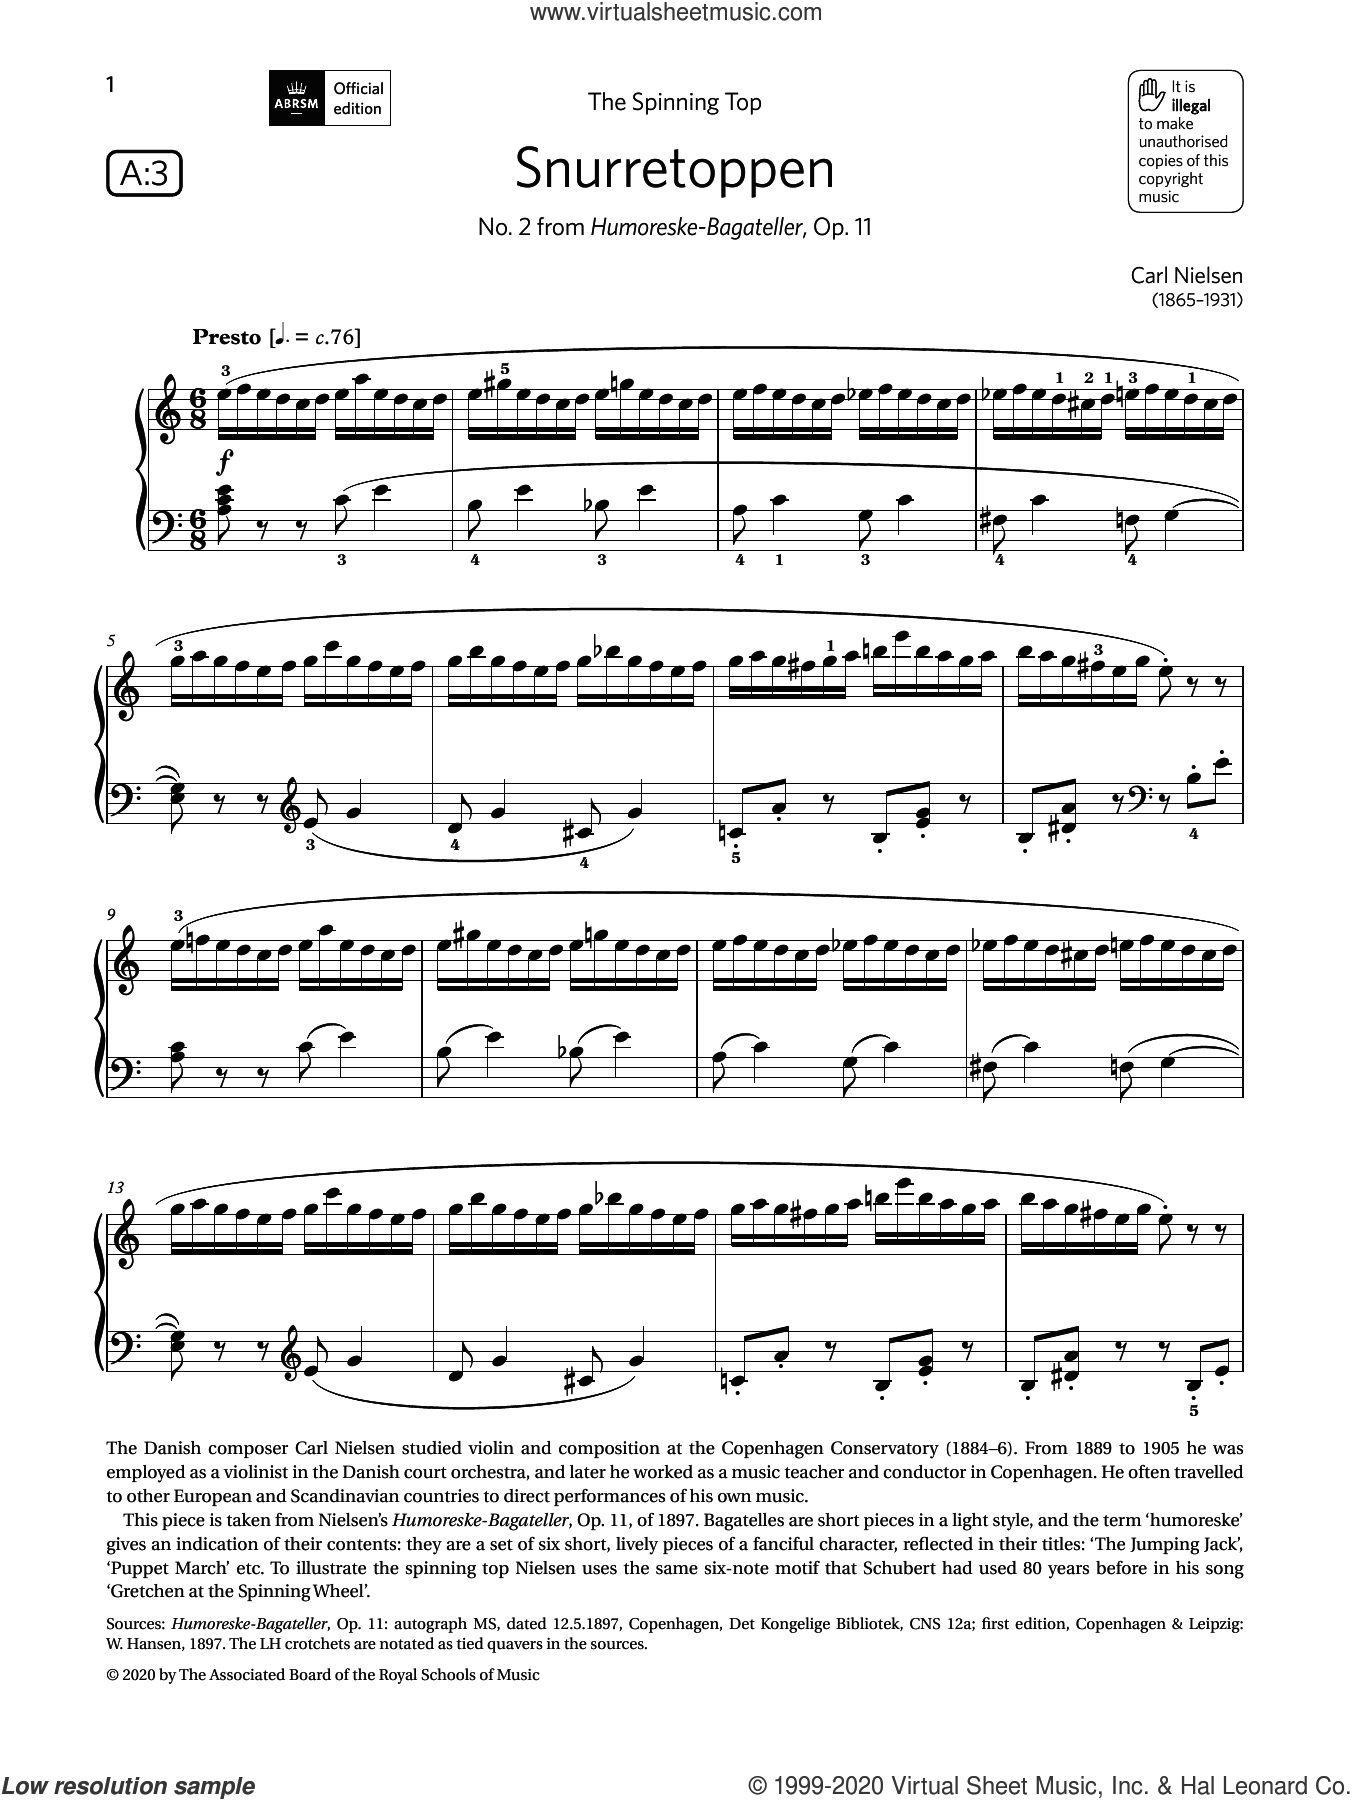 Snurretoppen (Grade 6, list A3, from the ABRSM Piano Syllabus 2021 and 2022) sheet music for piano solo by Carl Nielsen, classical score, intermediate skill level